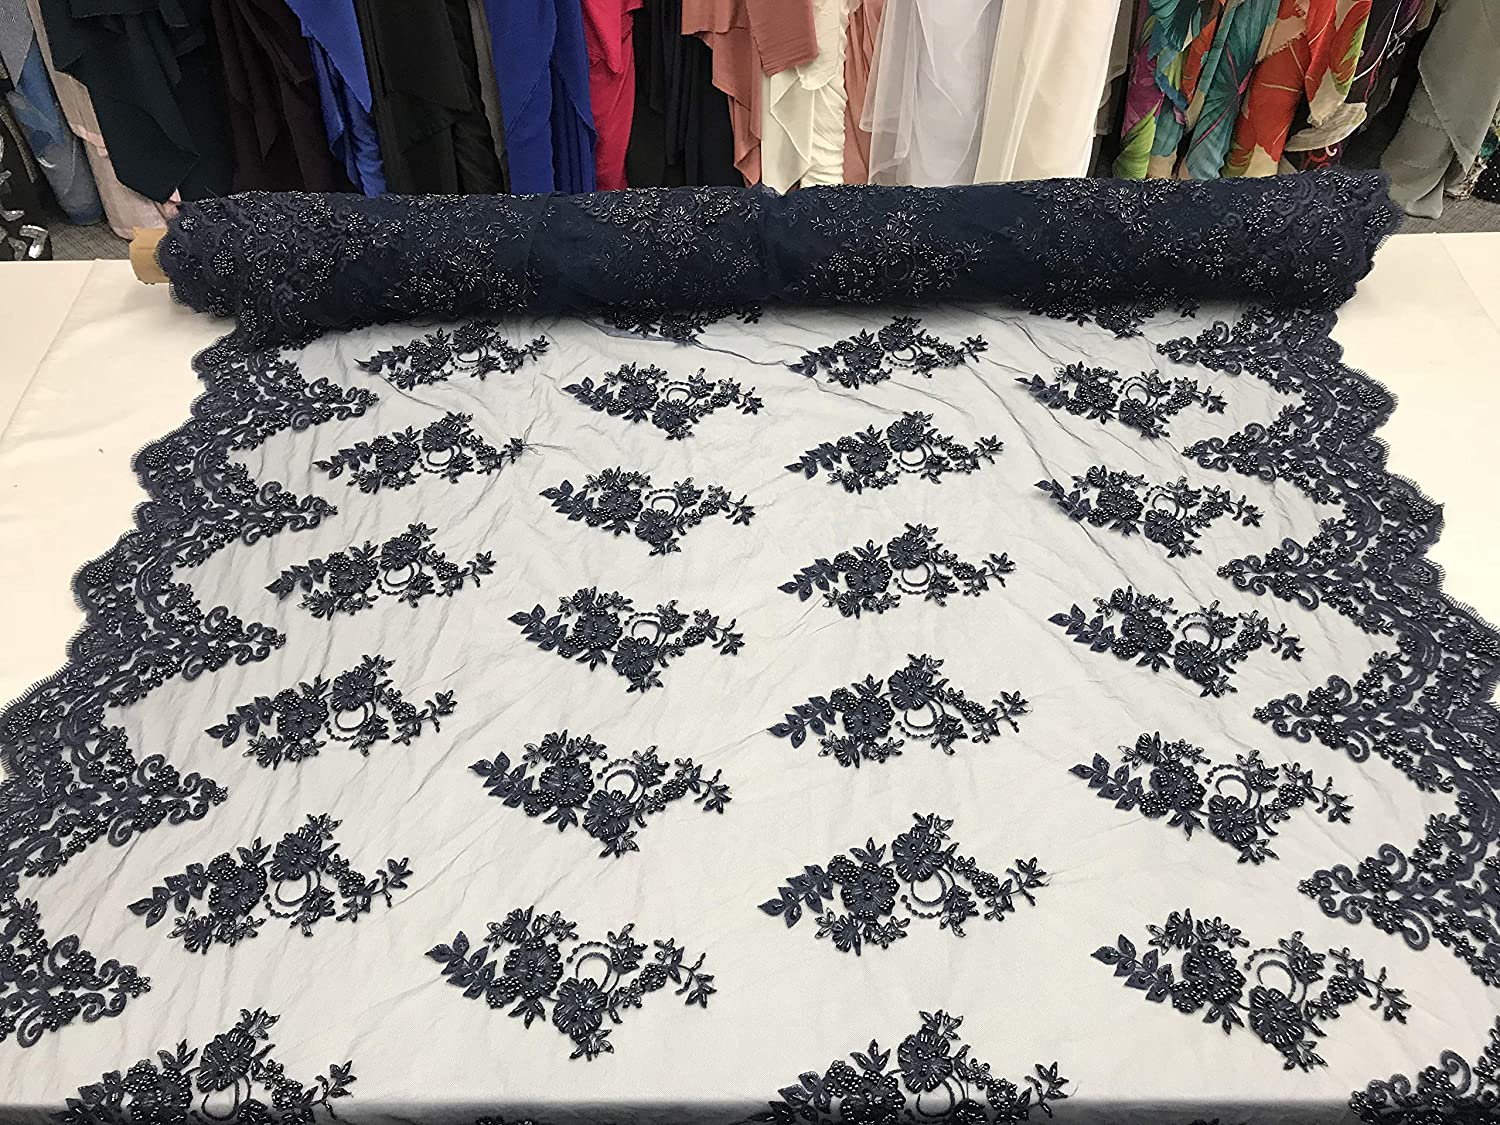 Tablecloths Runners Night Gowns Costumes Navy Mesh Lace Floral Fabric By The Yard/_ Embroidery Handmade Floral Lace/_ Decor Skirts